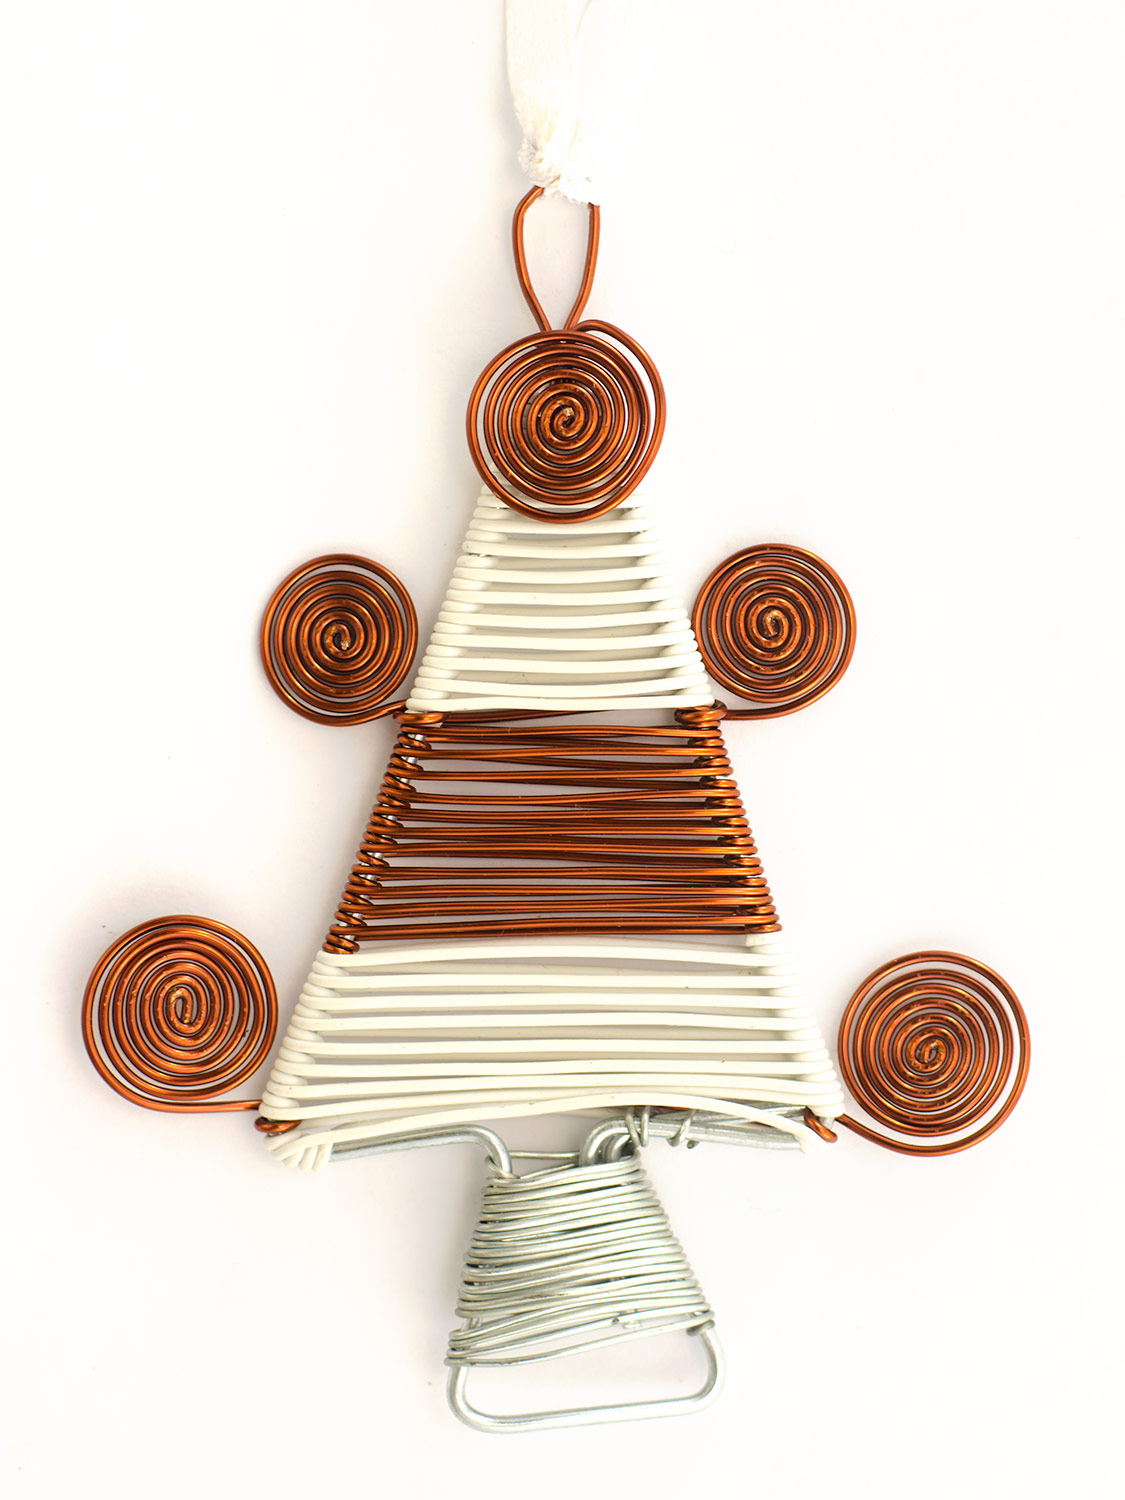 Scooby wire Christmas tree ornament